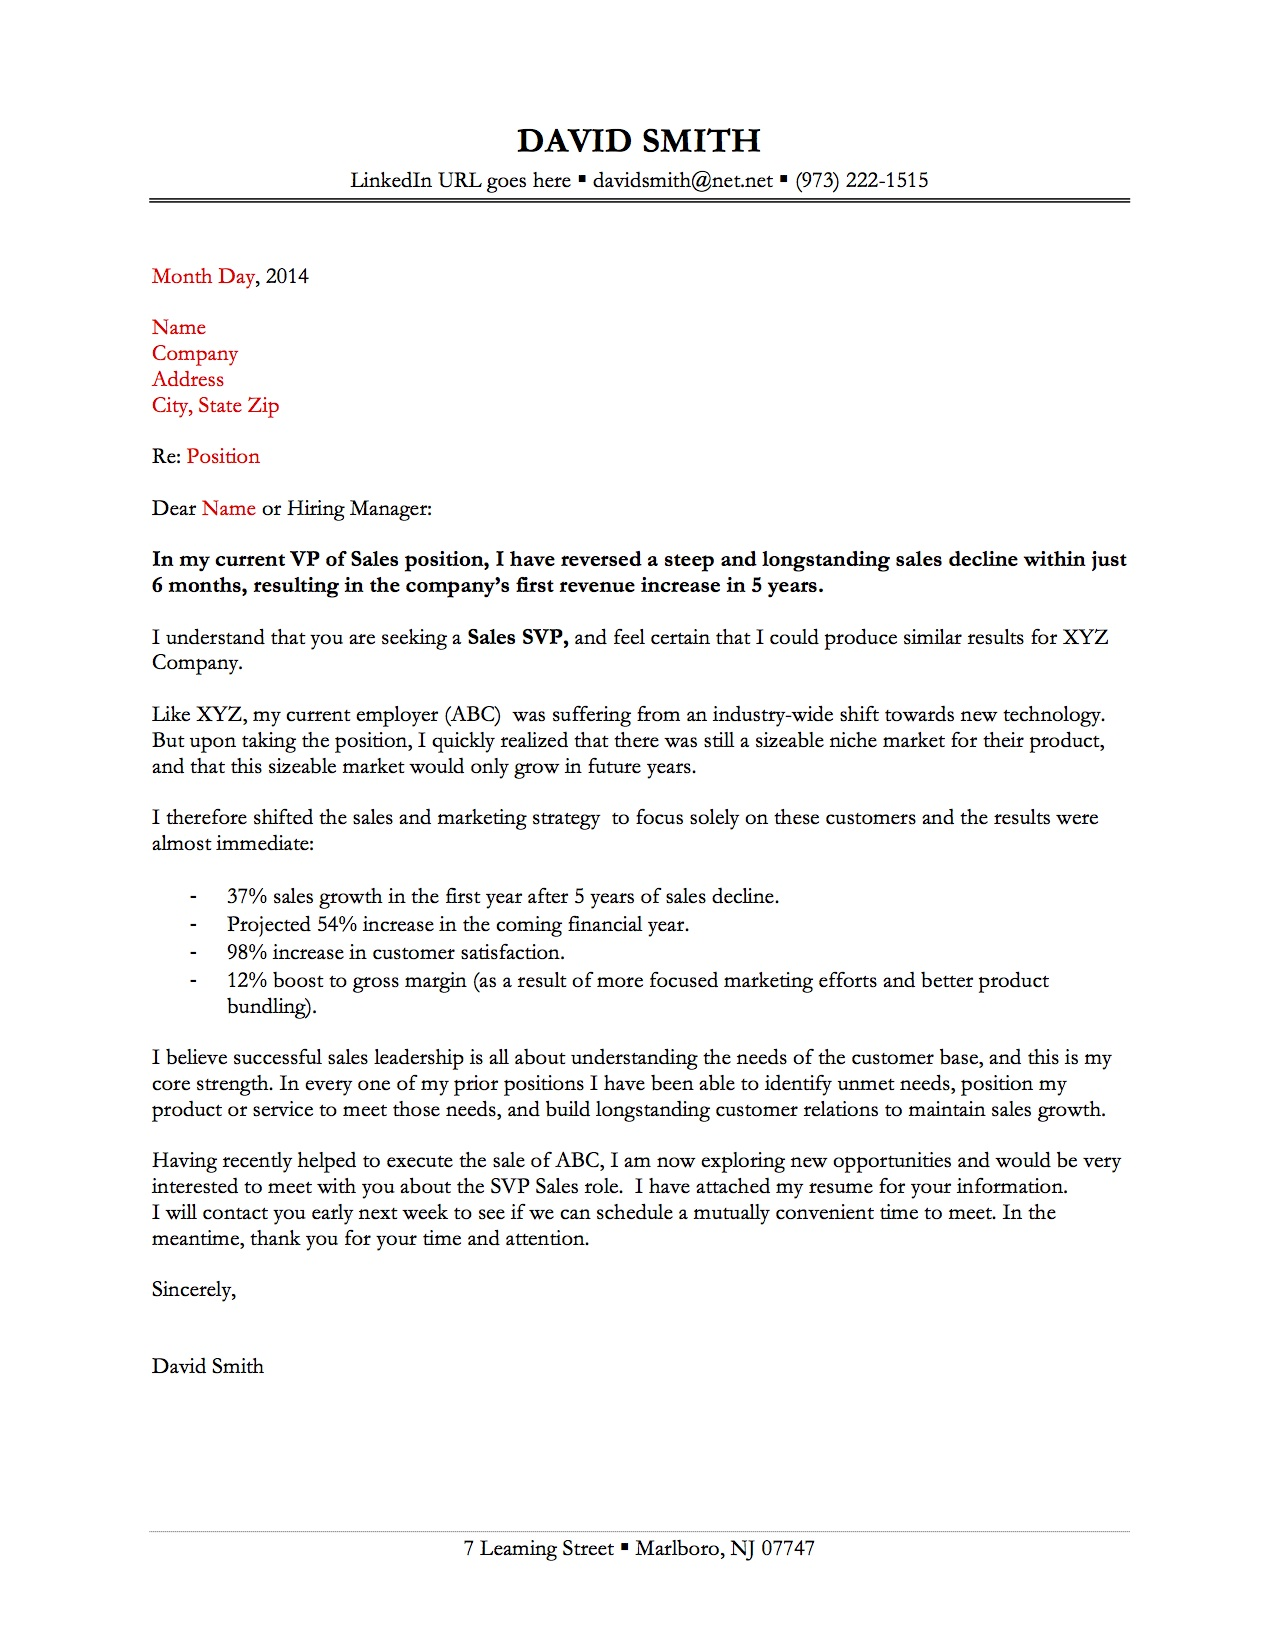 sample cover letter 2 - Resume Cover Letter Example